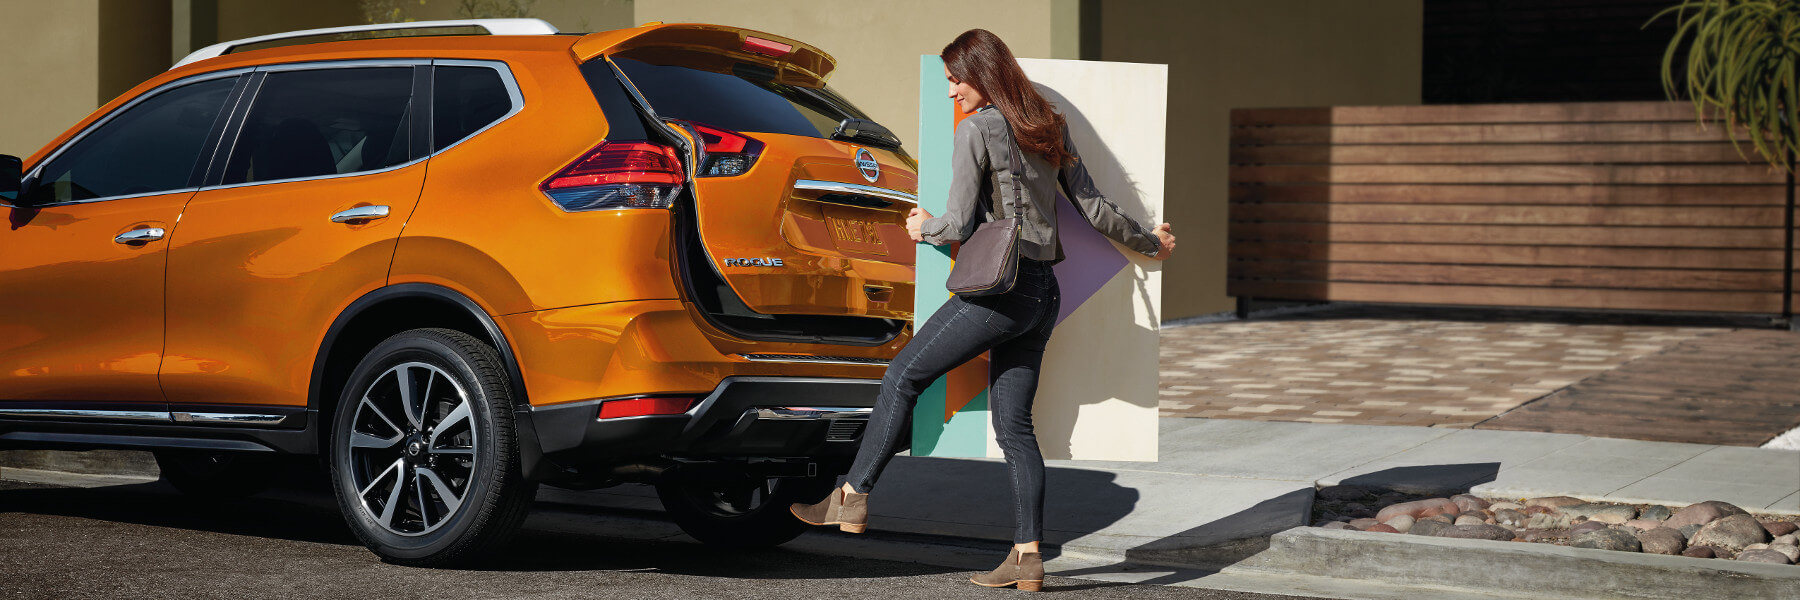 A woman holding a painting using her foot to open the back hatch on the 2018 Rogue Sport